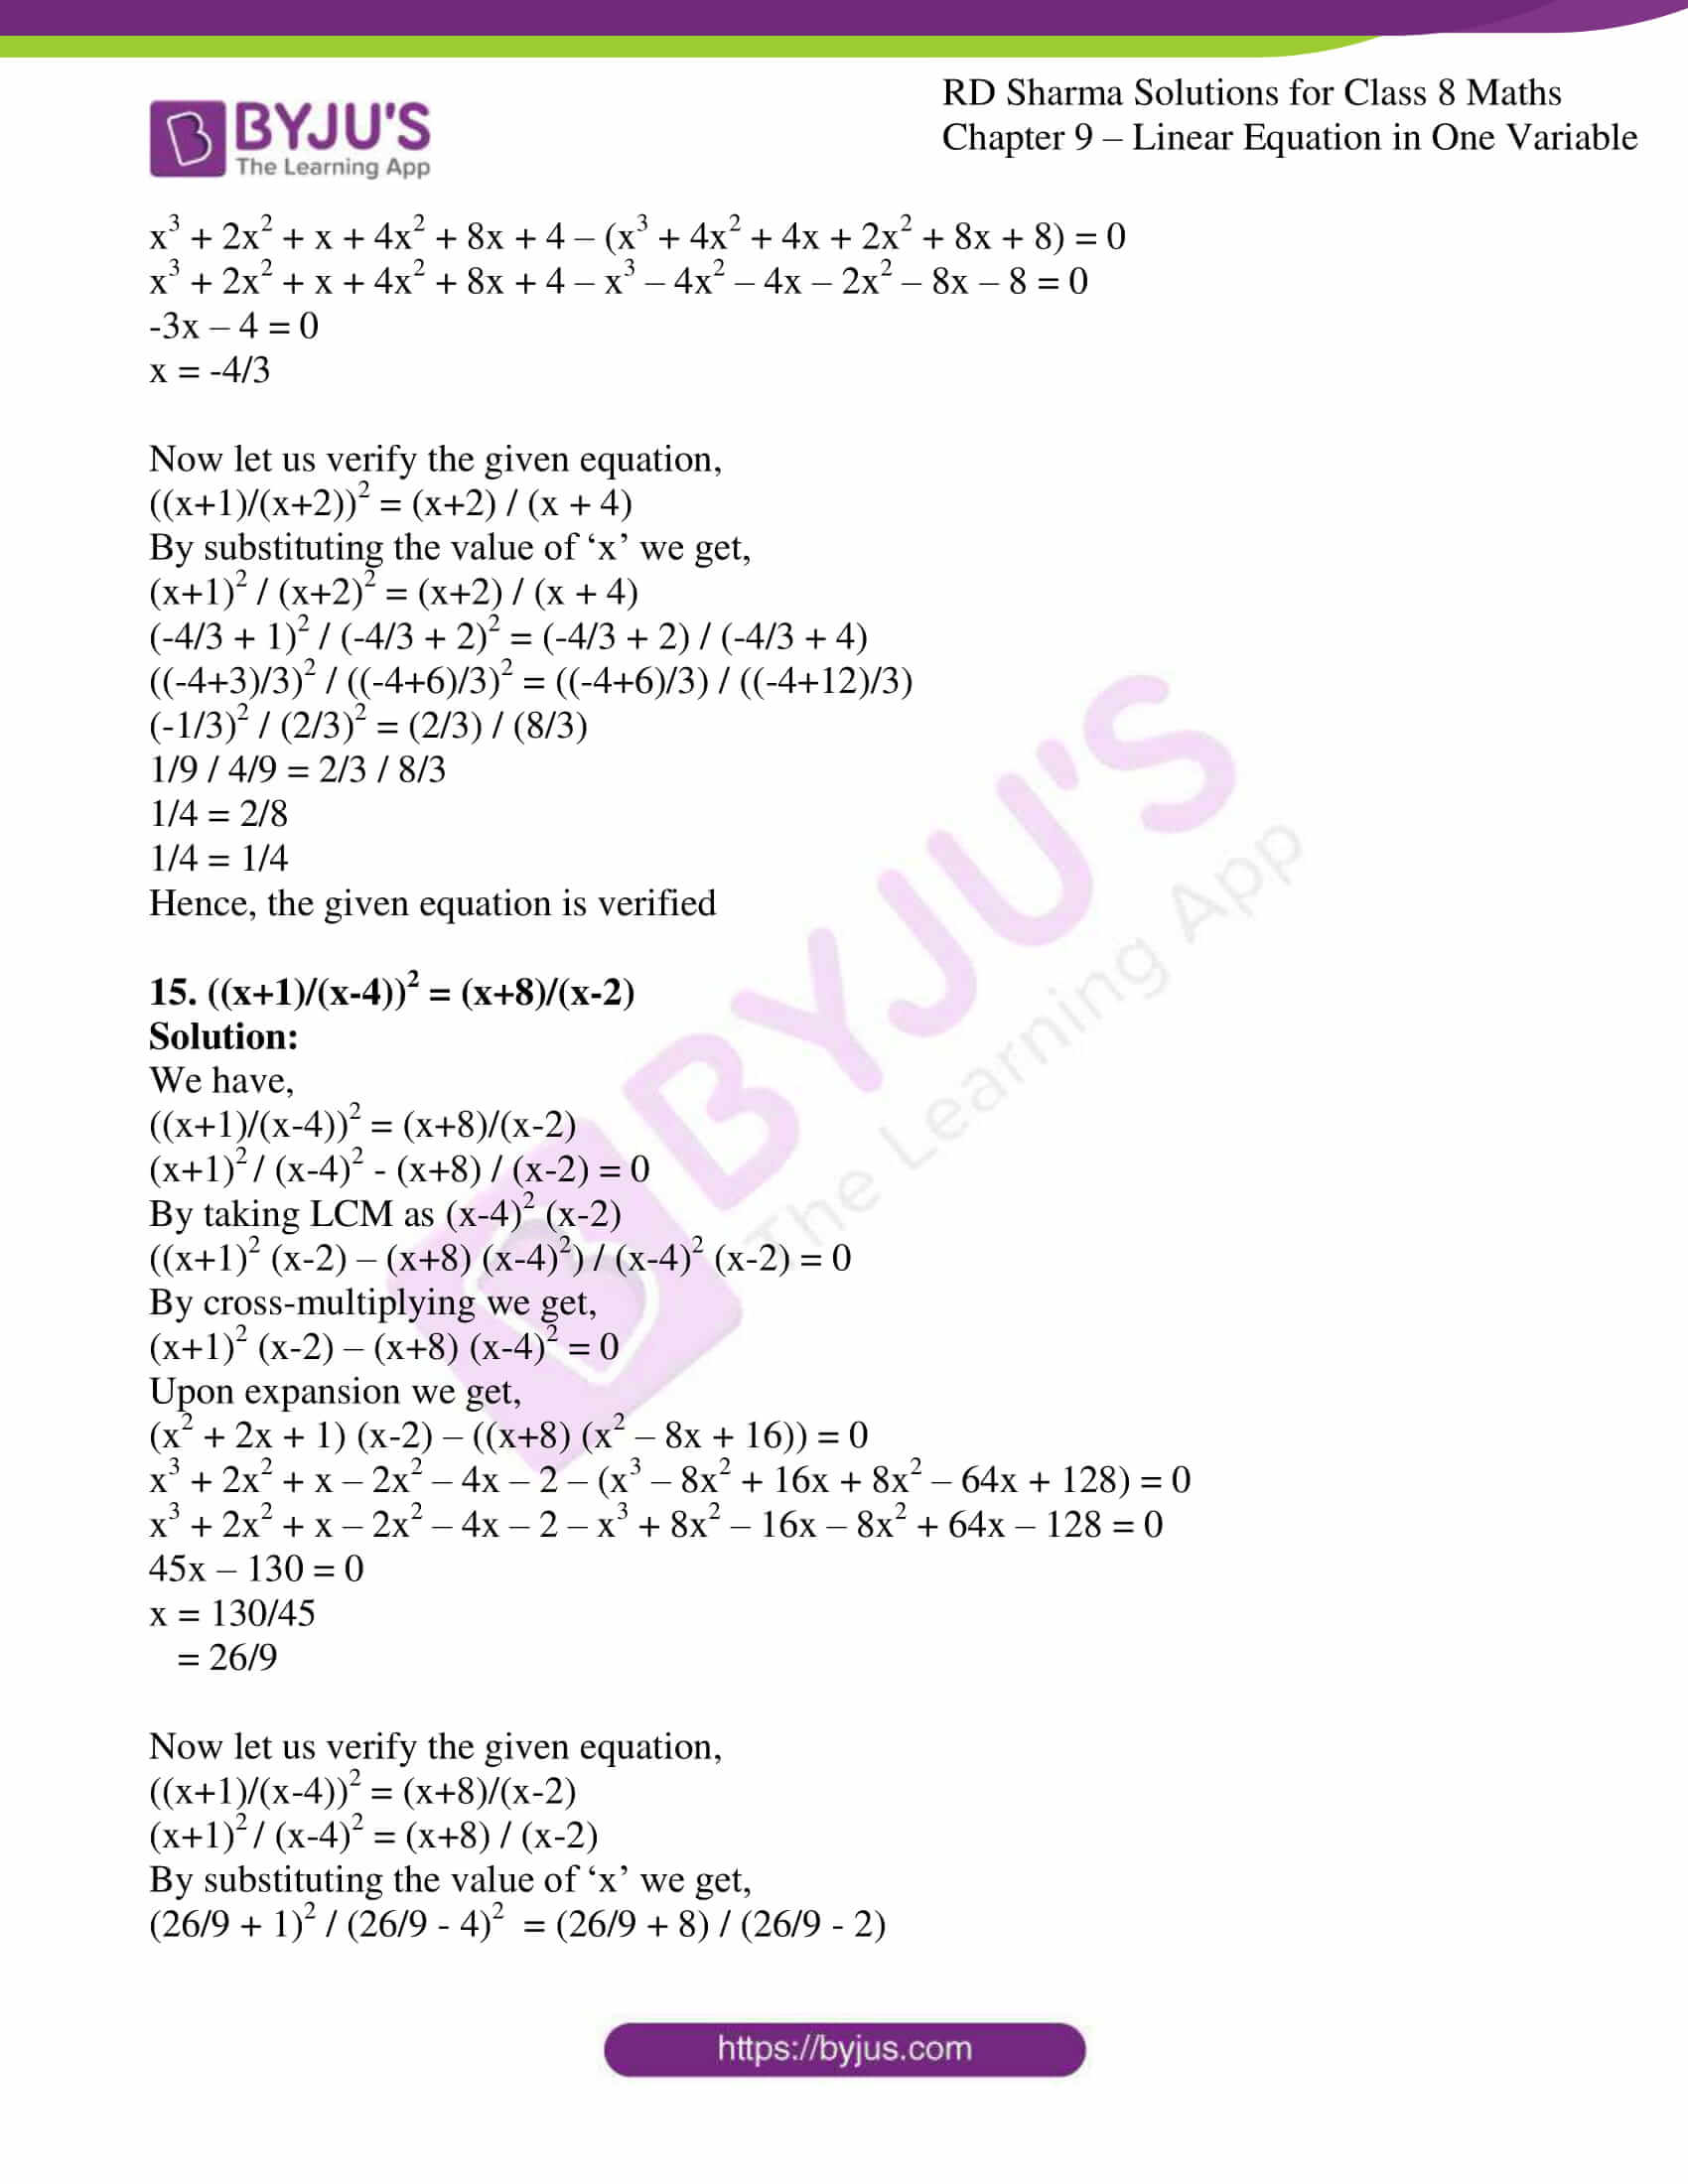 rd sharma class 8 maths chapter 9 exercise 3 09